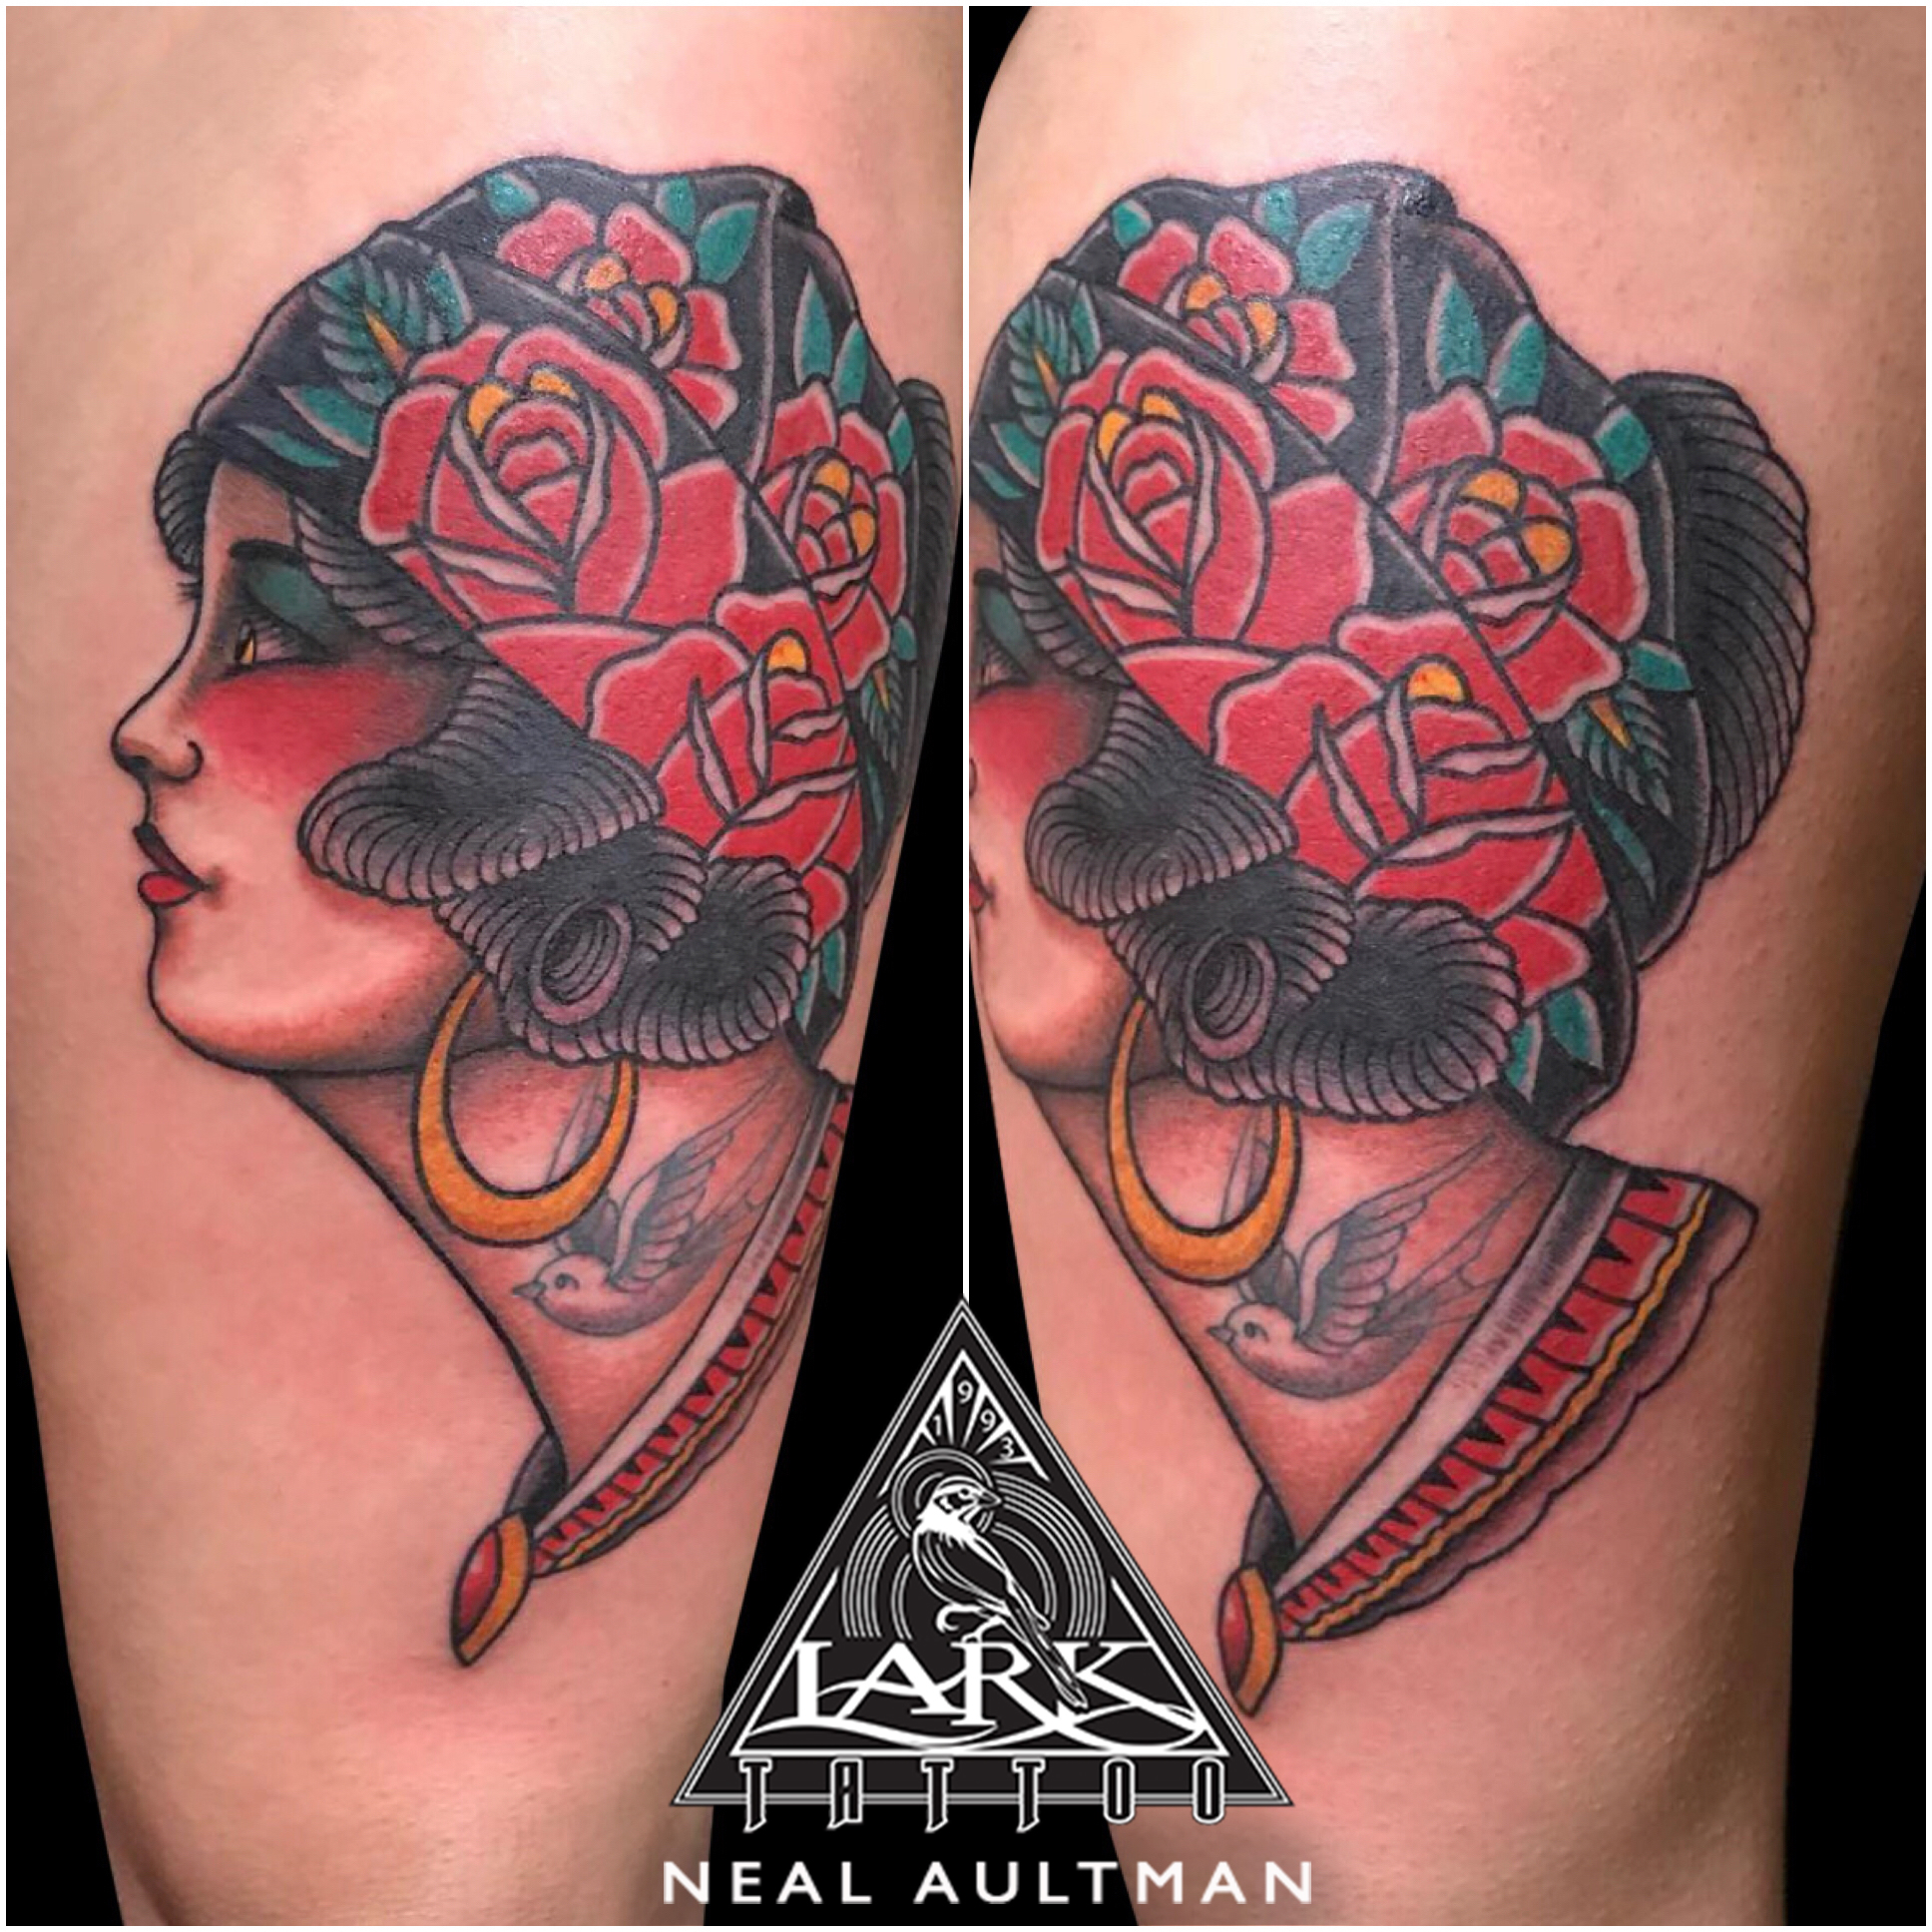 #traditional #traditionaltattoo #colortattoo #ladyhead #ladyheadtattoo #rosetattoo #rose #roses #tattoowithtattoo #swallow #swallowtattoo #tattoo #tattoos #tat #tats #tatts #tatted #tattedup #tattoist #tattooed #inked #inkedup #ink #tattoooftheday #amazingink #bodyart #tattooig #tattoosofinstagram #instatats #larktattoo #larktattoos #larktattoowestbury #westbury #longisland #NY #NewYork #usa #art #neal #aultman #nealaultman